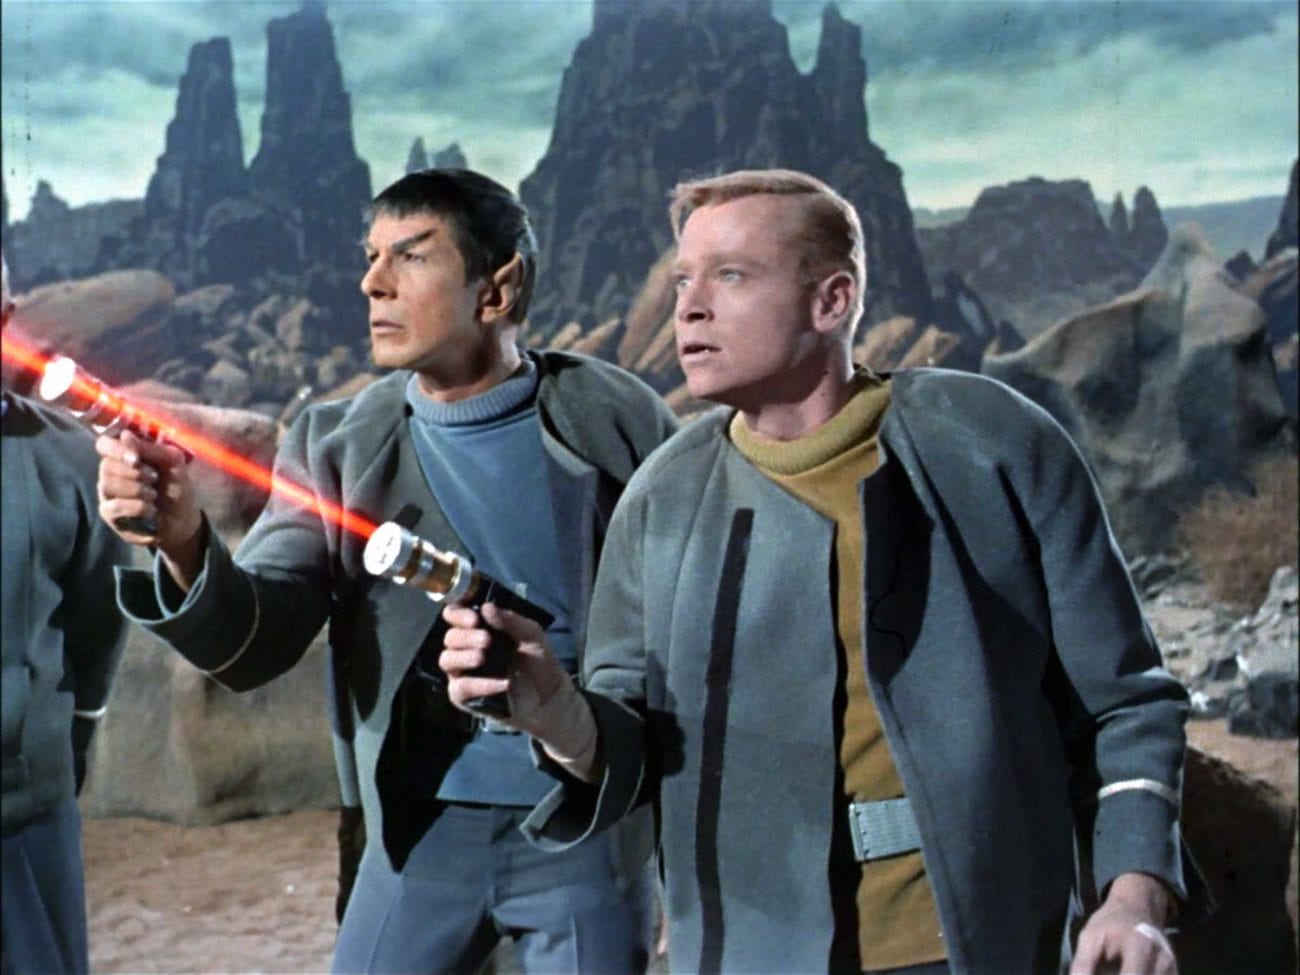 'Star Trek' is jam-packed with villains. And they are amazing. In honor of 'Star Trek''s incredible catalog of villainy, here is a list of our favorites.